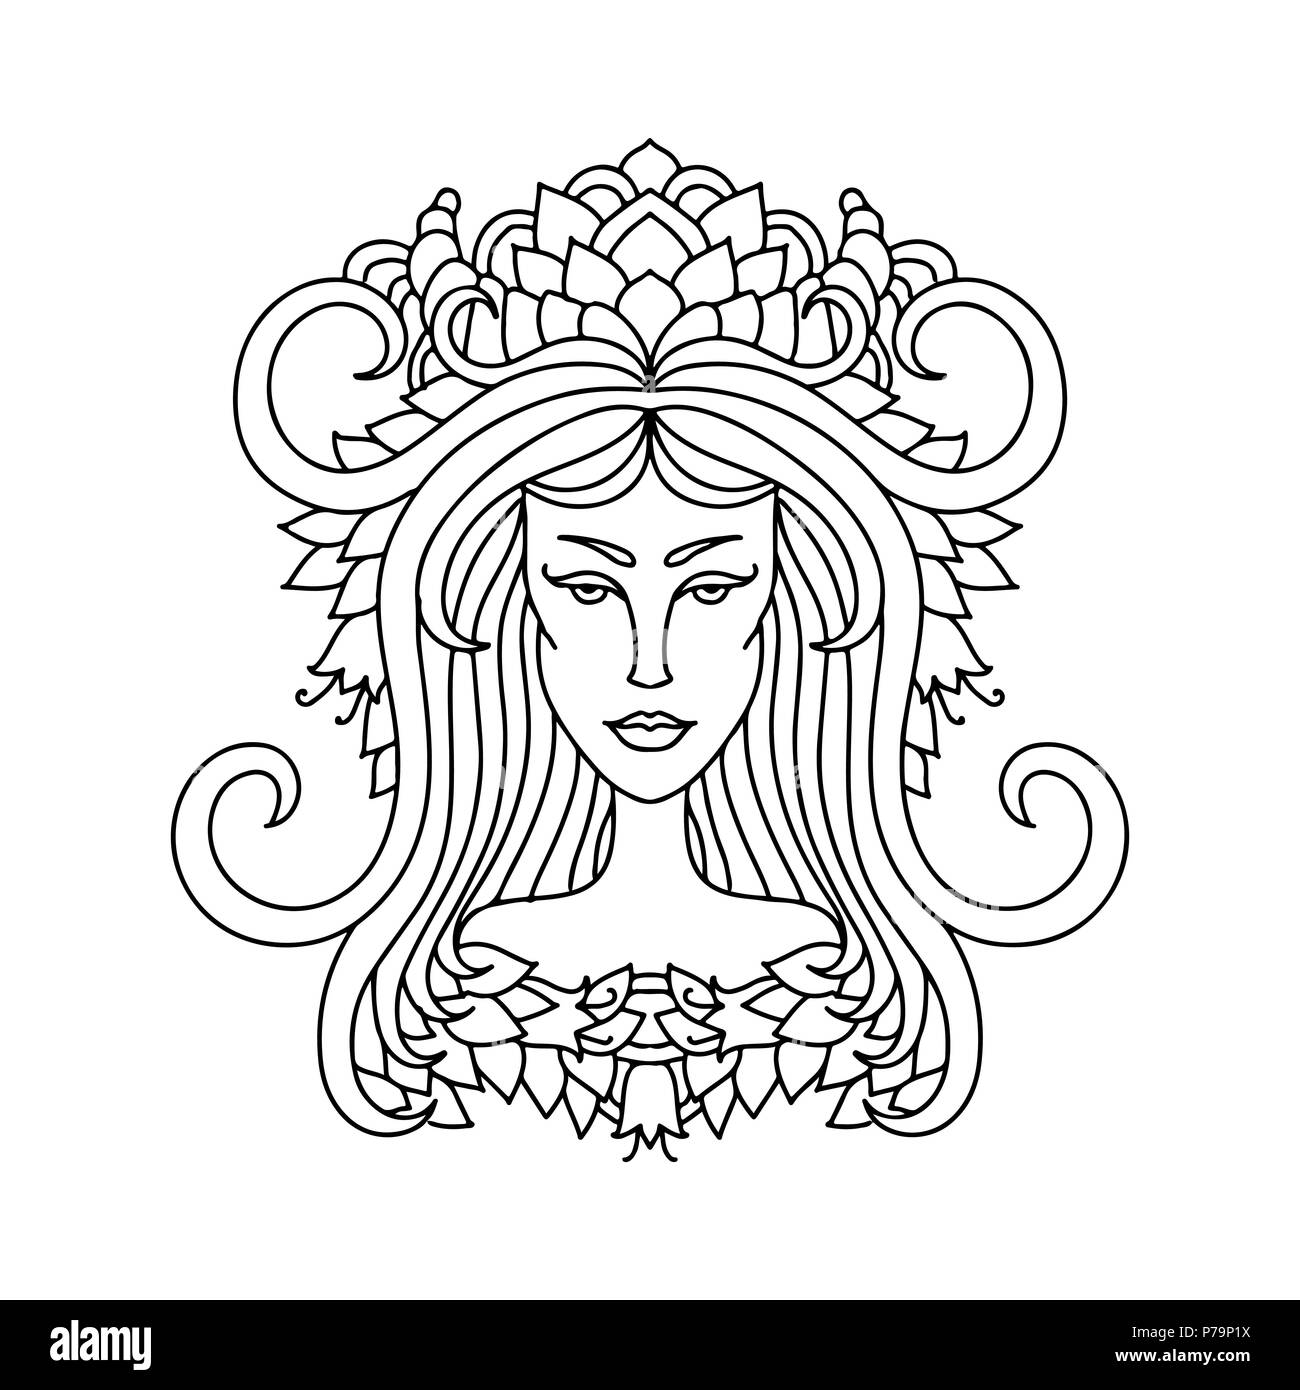 Aries Girl Portrait Zodiac Sign For Adult Coloring Book Simple